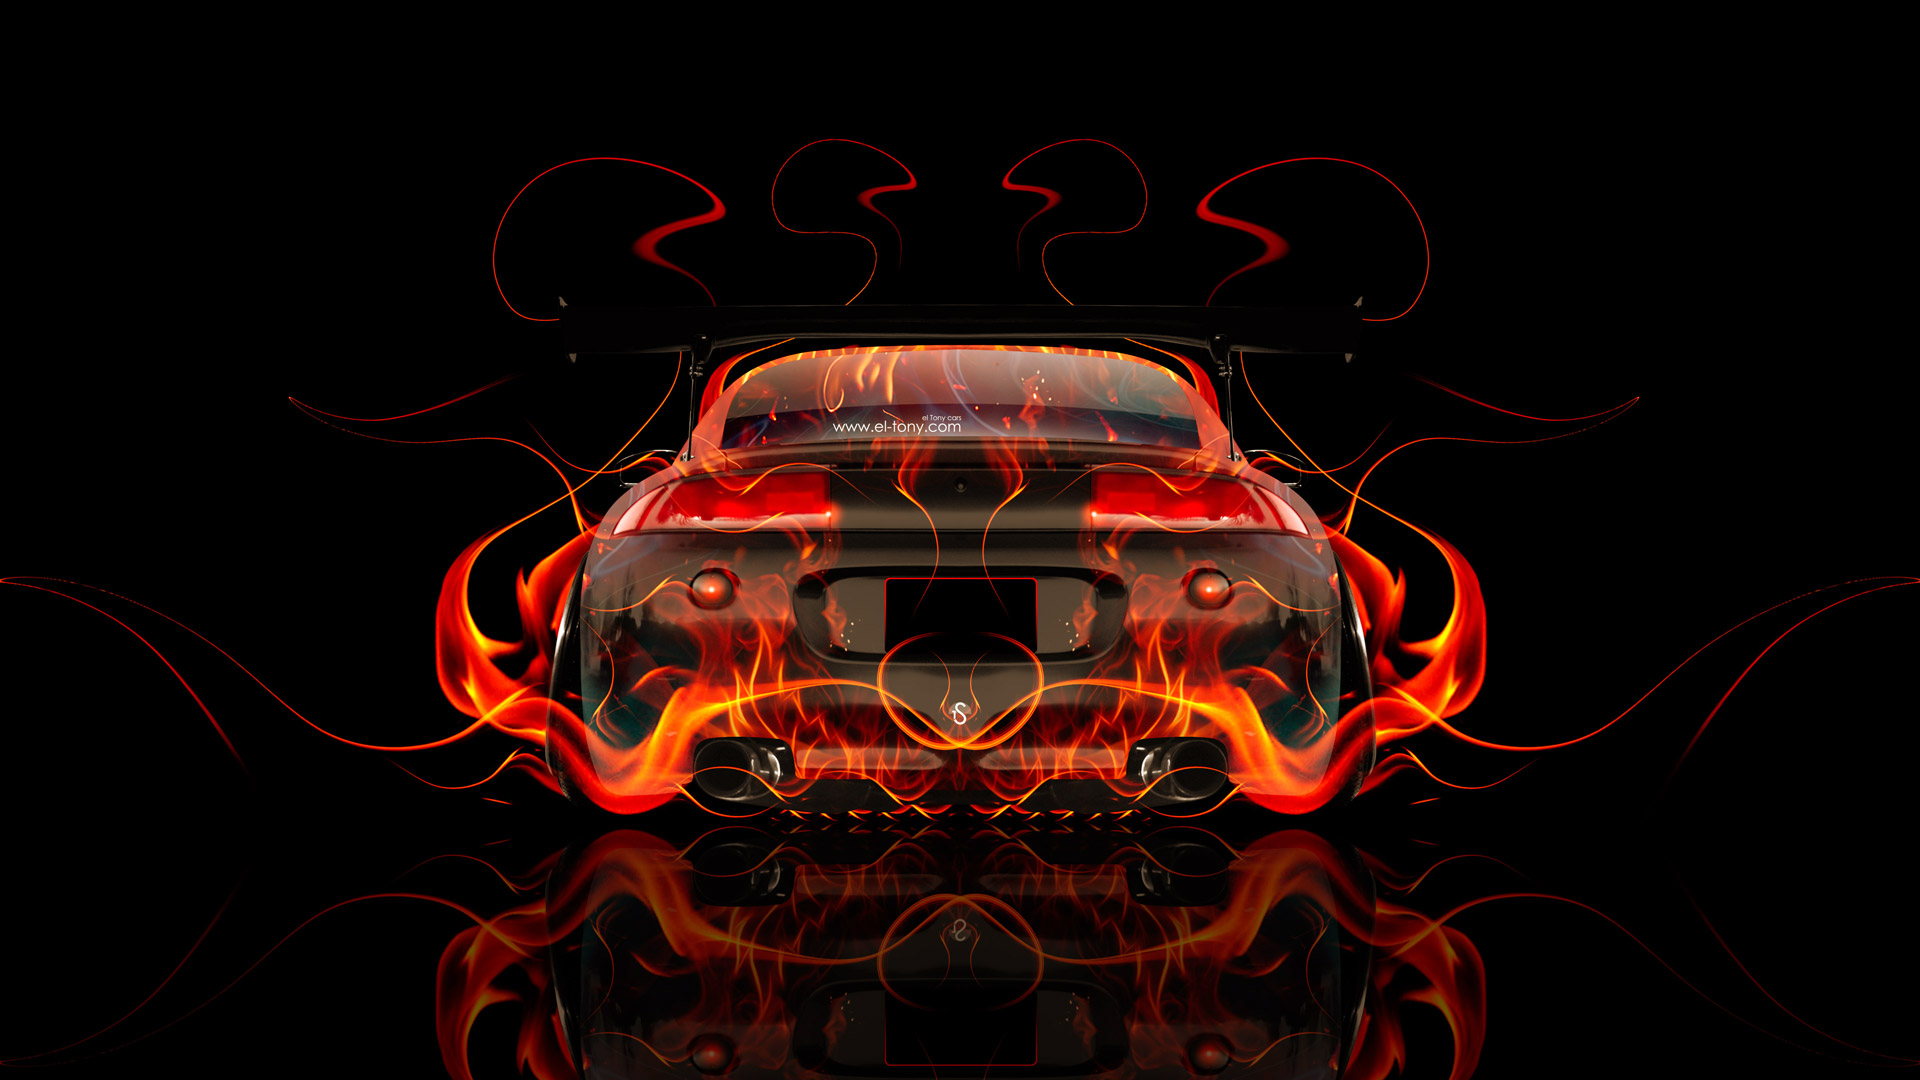 Exceptionnel Mitsubishi Eclipse JDM Tuning Back Fire Car 2014